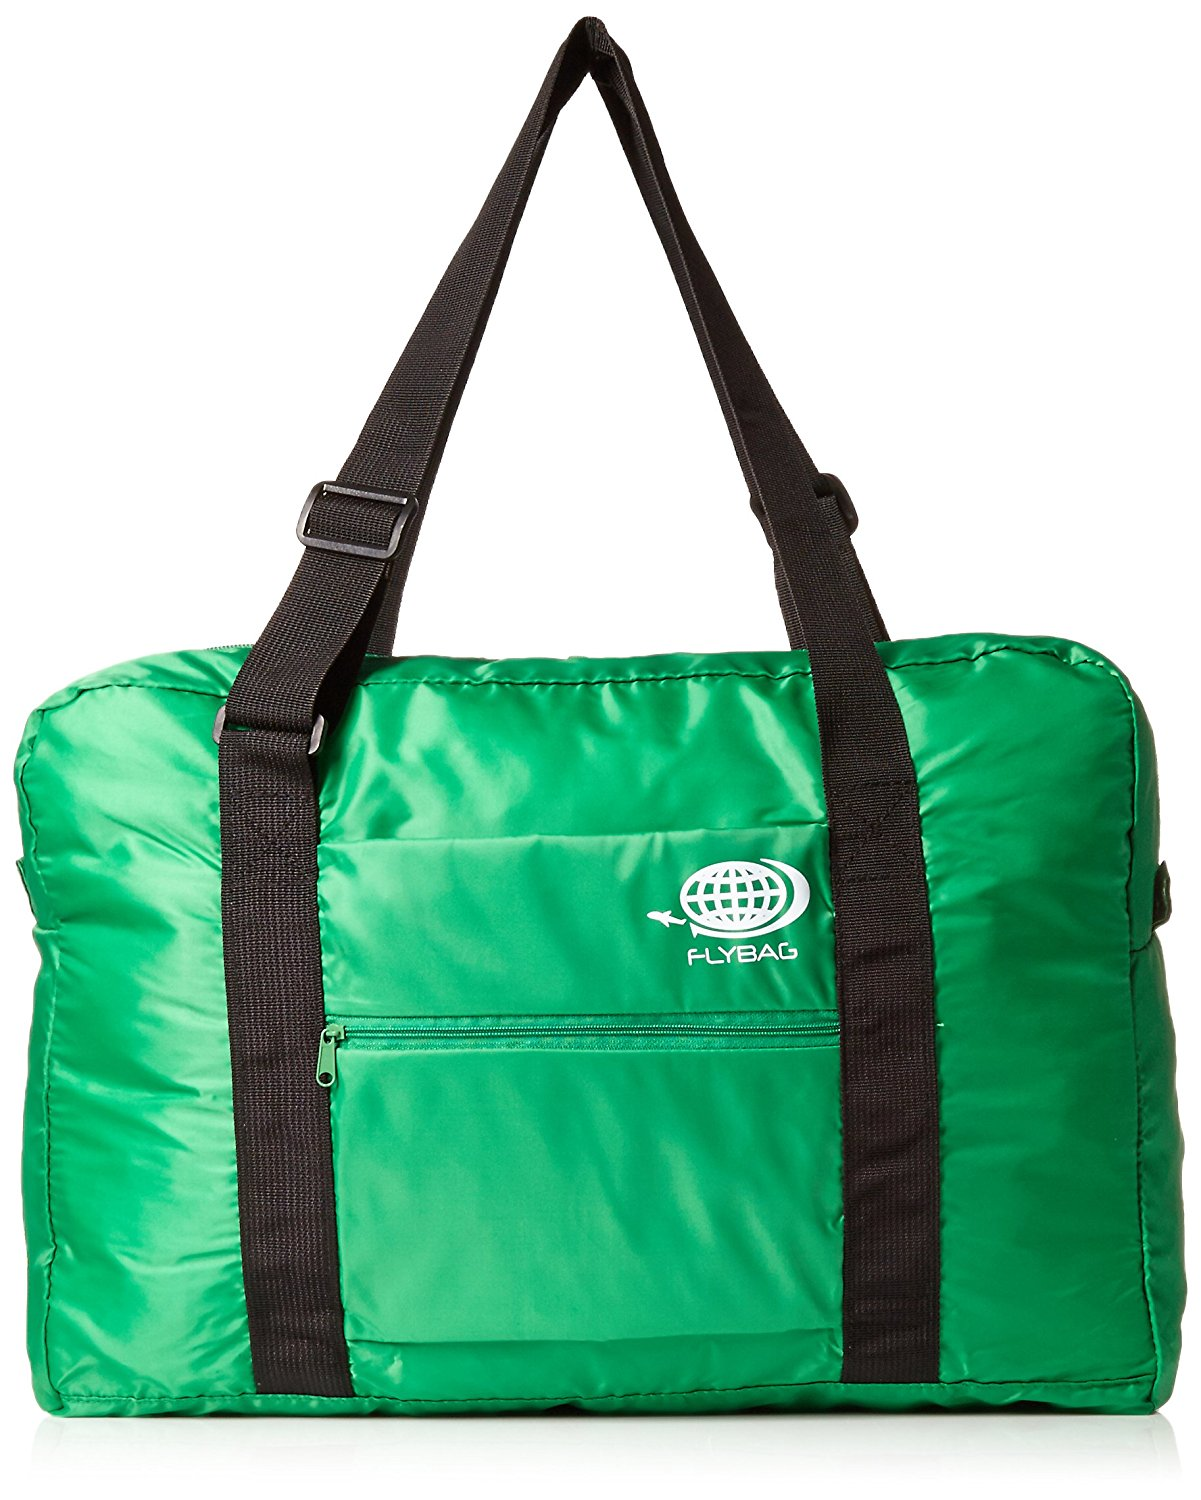 FLYBAG (fly bag) <2nd> Travel bag / tote bag (all eight) (Green) (japan import)